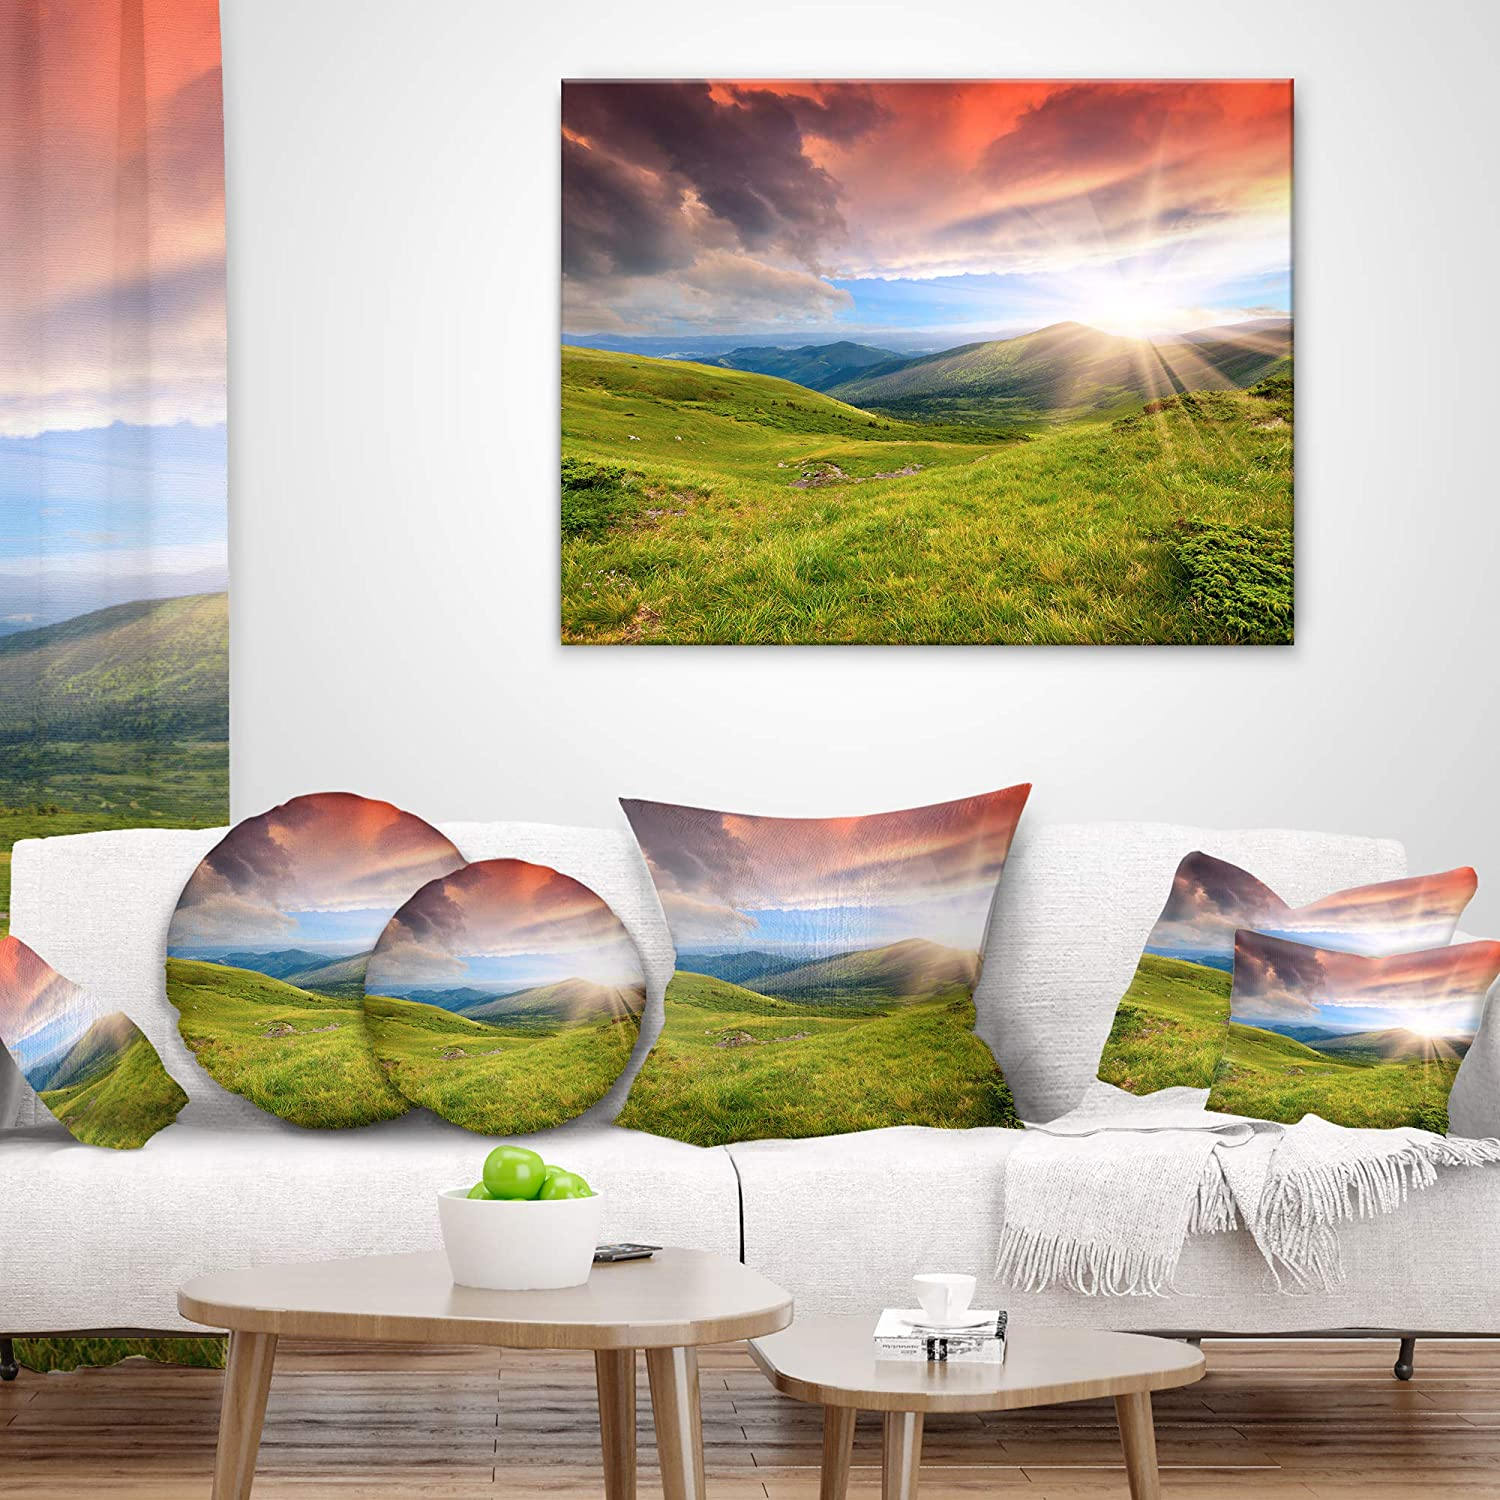 Designart CU9619-16-16-C Green Summer in Carpathians Landscape Photo Round Cushion Cover for Living Room Insert Printed On Both Side Sofa Throw Pillow 16